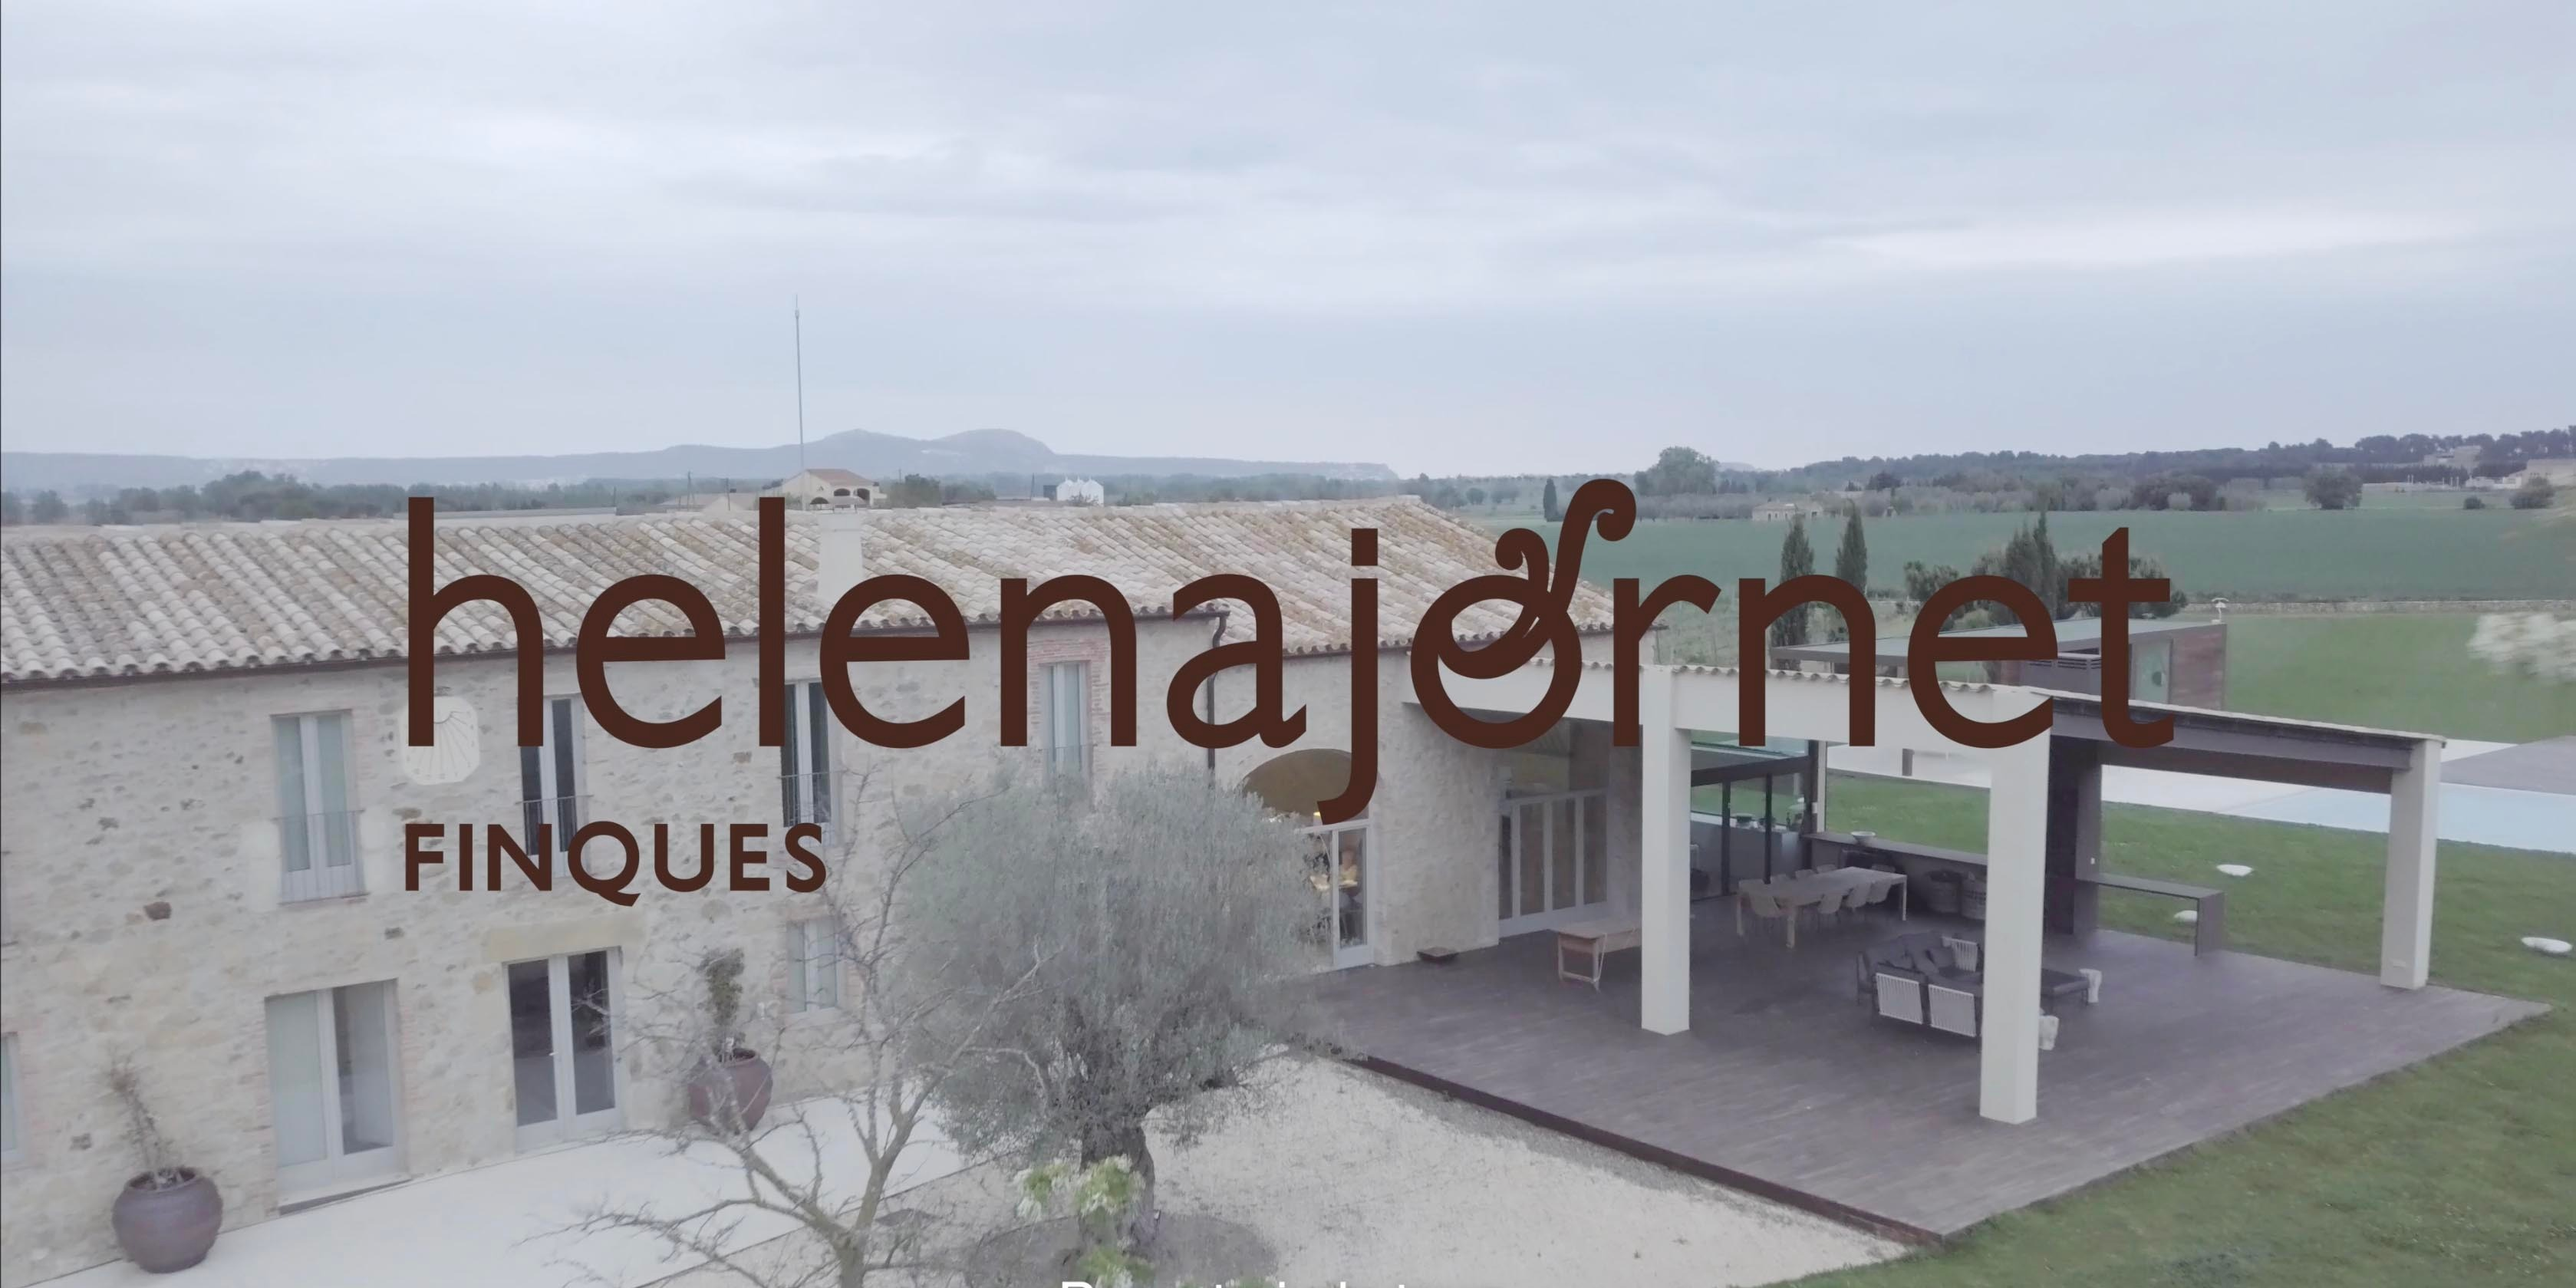 Have you seen Helena Jornet Finques' new spot?